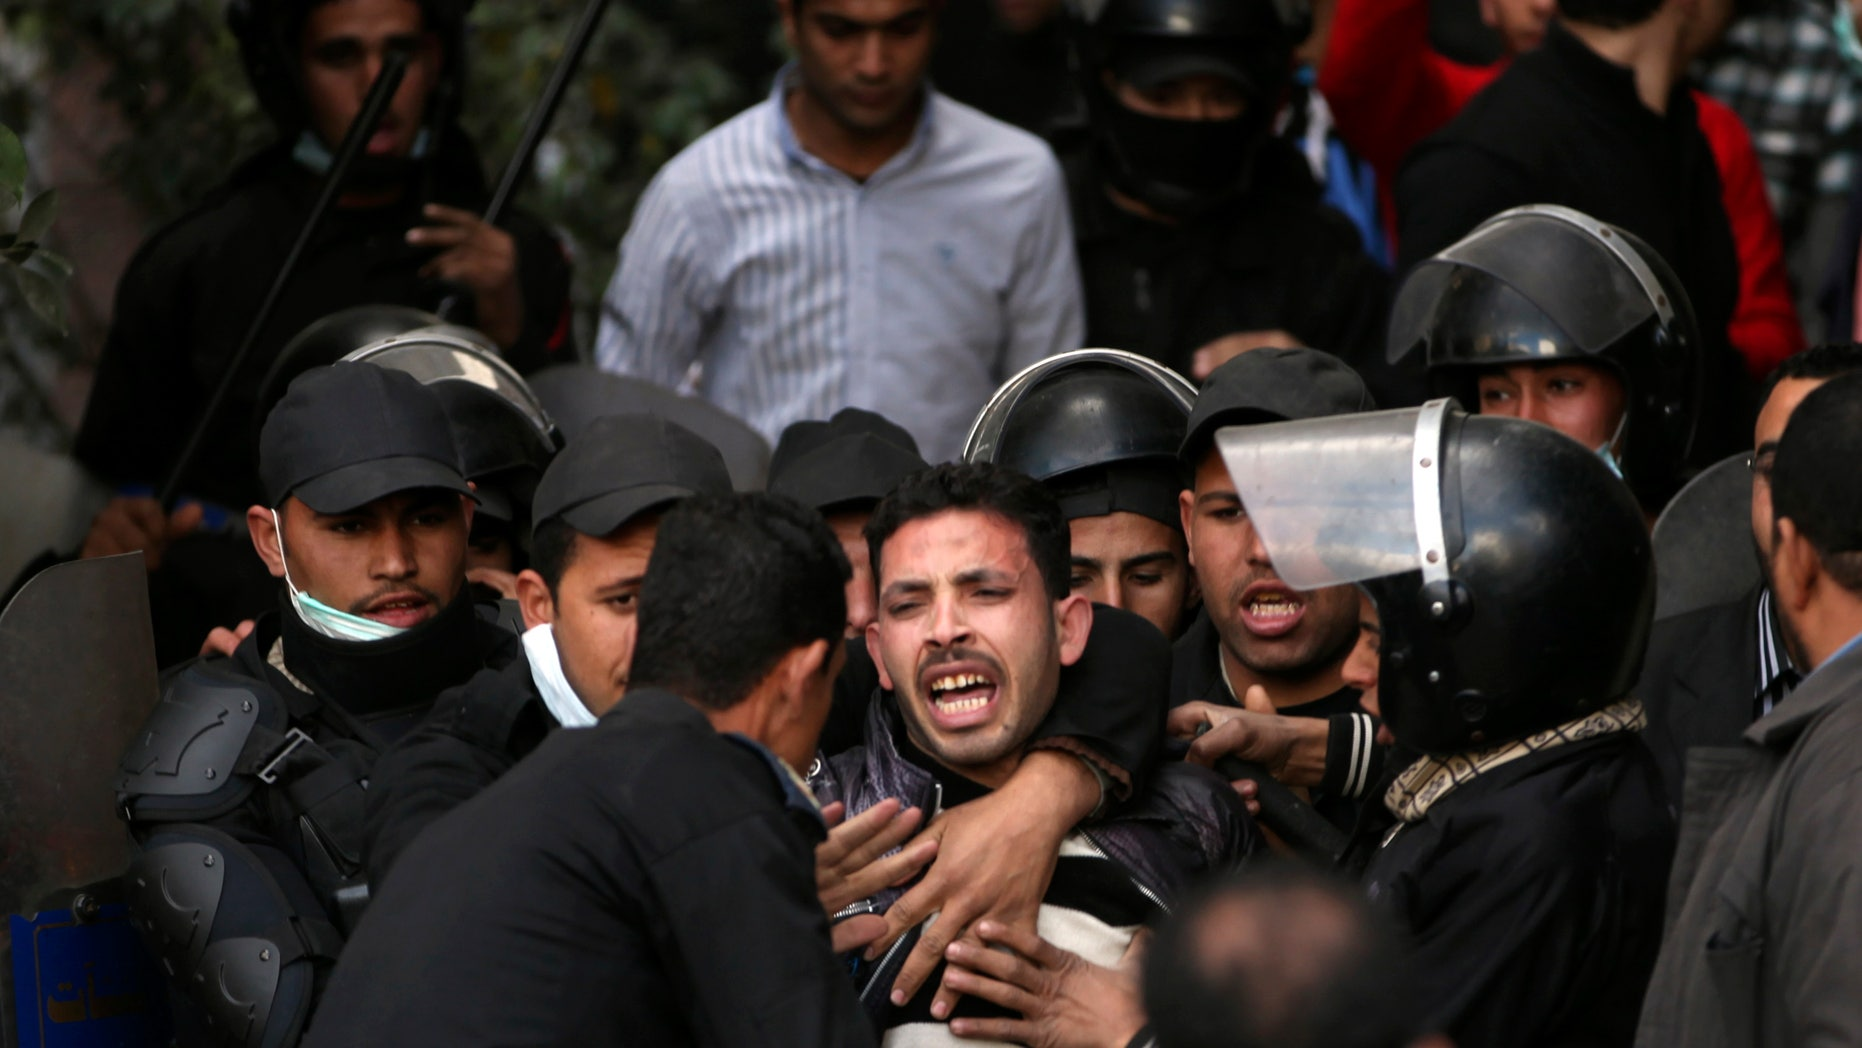 FILE - In this Wednesday, Jan. 30, 2013 file photo, Egyptian riot police arrest a man during clashes with protesters near Tahrir Square in Cairo, Egypt. With near impunity and the backing of the Islamist president, Egyptian police have over the past week used excessive and often deadly force against protesters across much of the country, regaining their Mubarak-era notoriety as a tool of repression. With nearly 60 people dead and hundreds injured, police have re-emerged as a significant political player after spending the past two years on the sidelines. (AP Photo/Khalil Hamra, File)